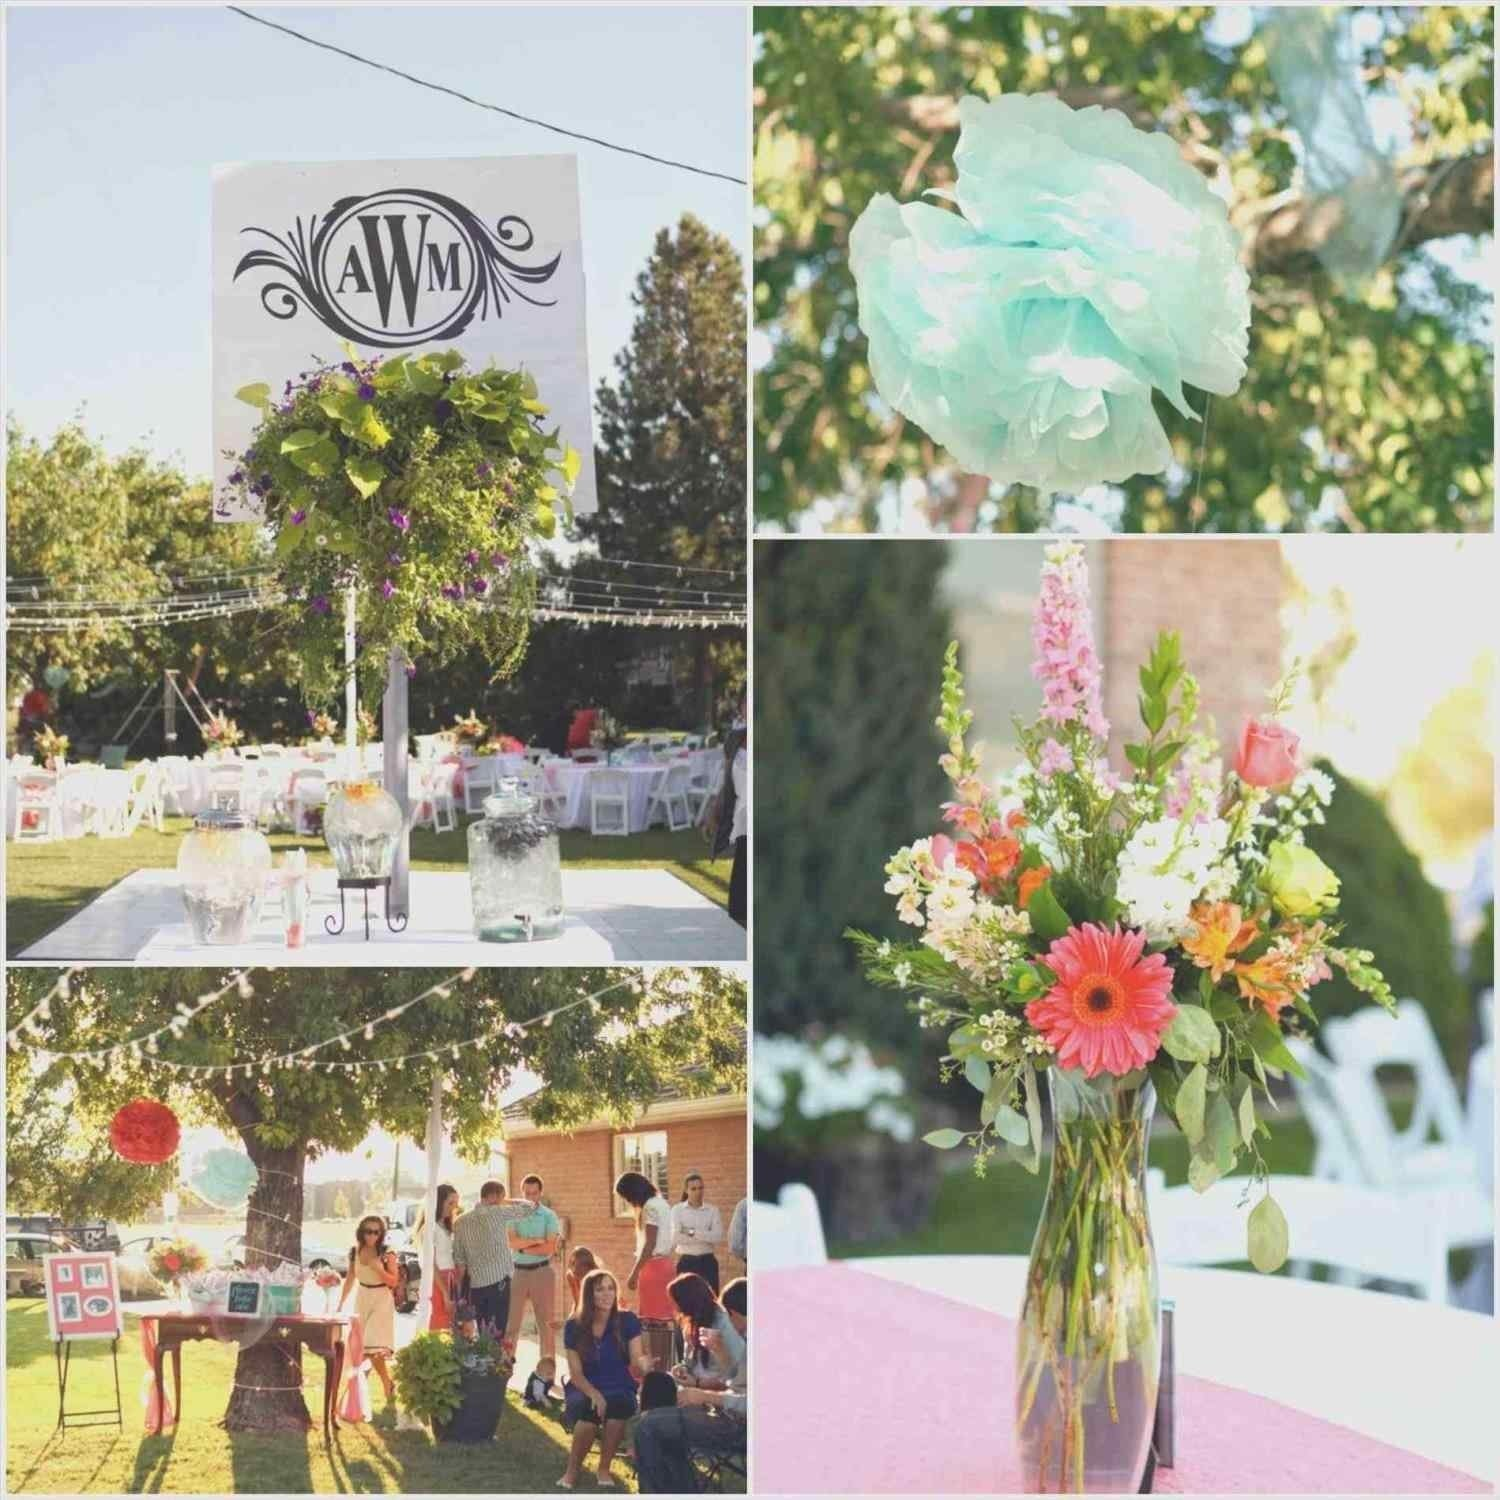 10 Attractive Small Wedding Ideas For Summer fascinating small wedding ideas for summer your meme pics of how to